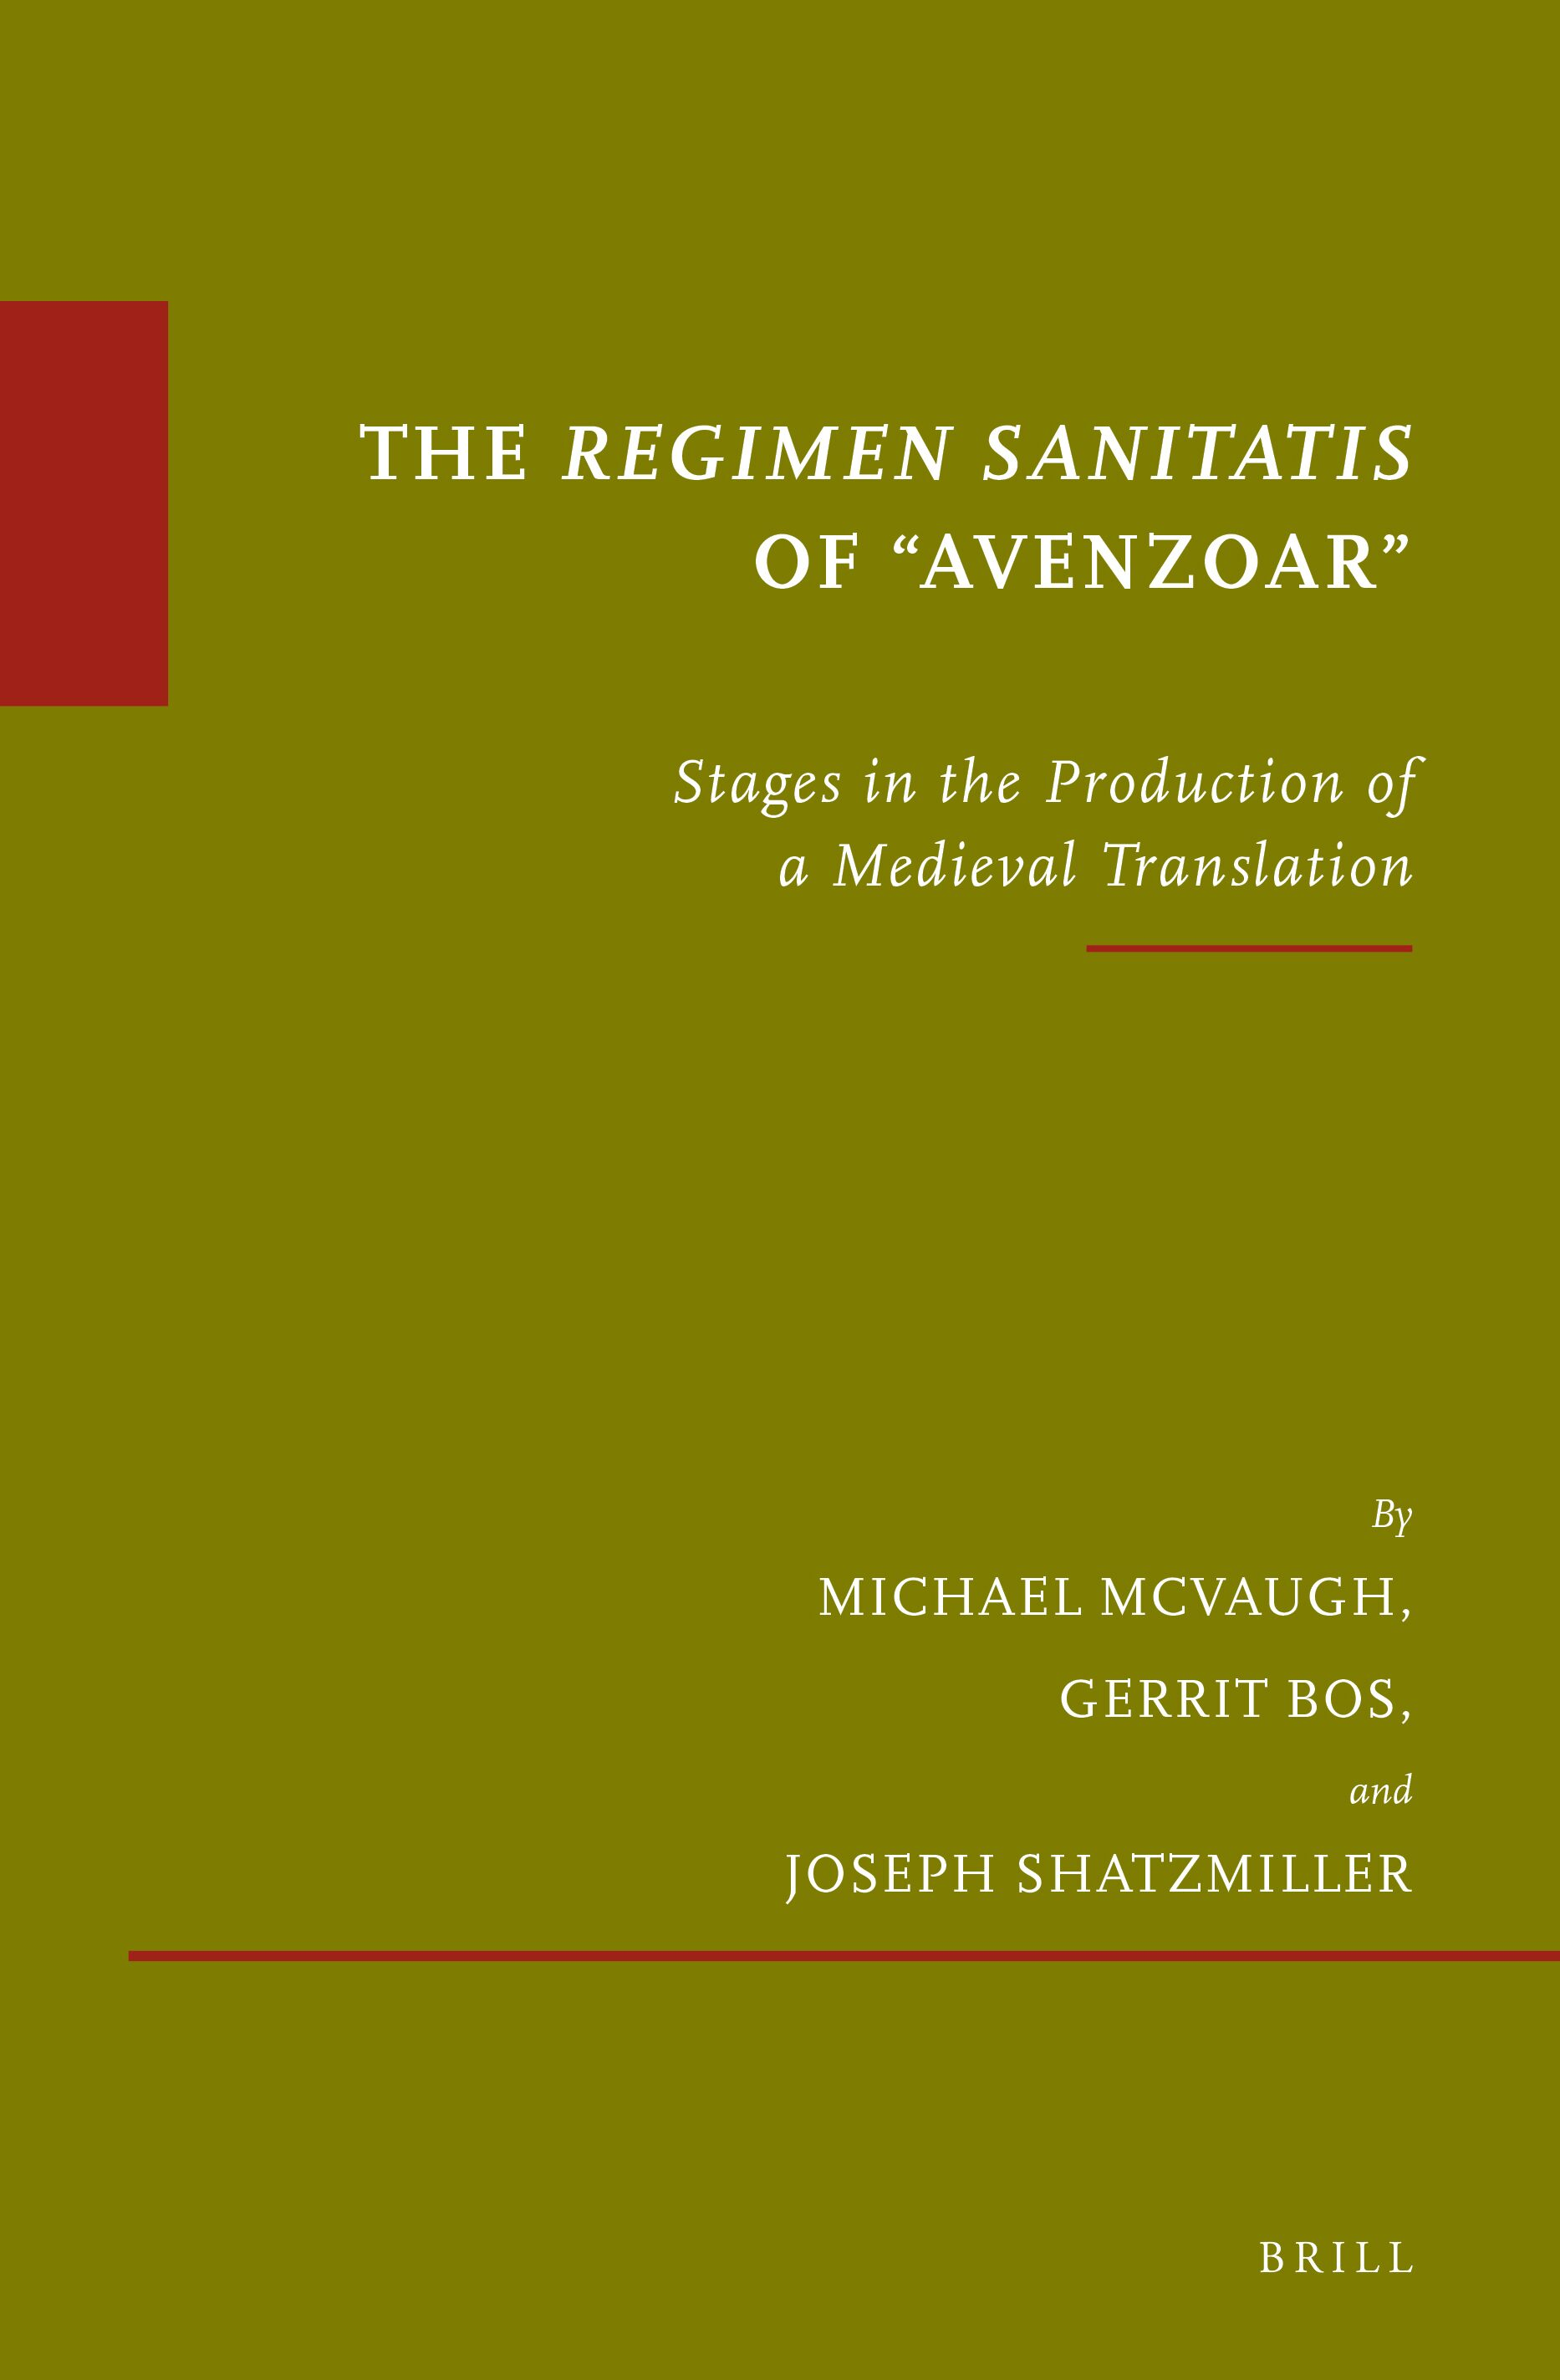 Difference Niveau Entre 2 Pieces historical introduction in: the <i>regimen sanitatis</i> of